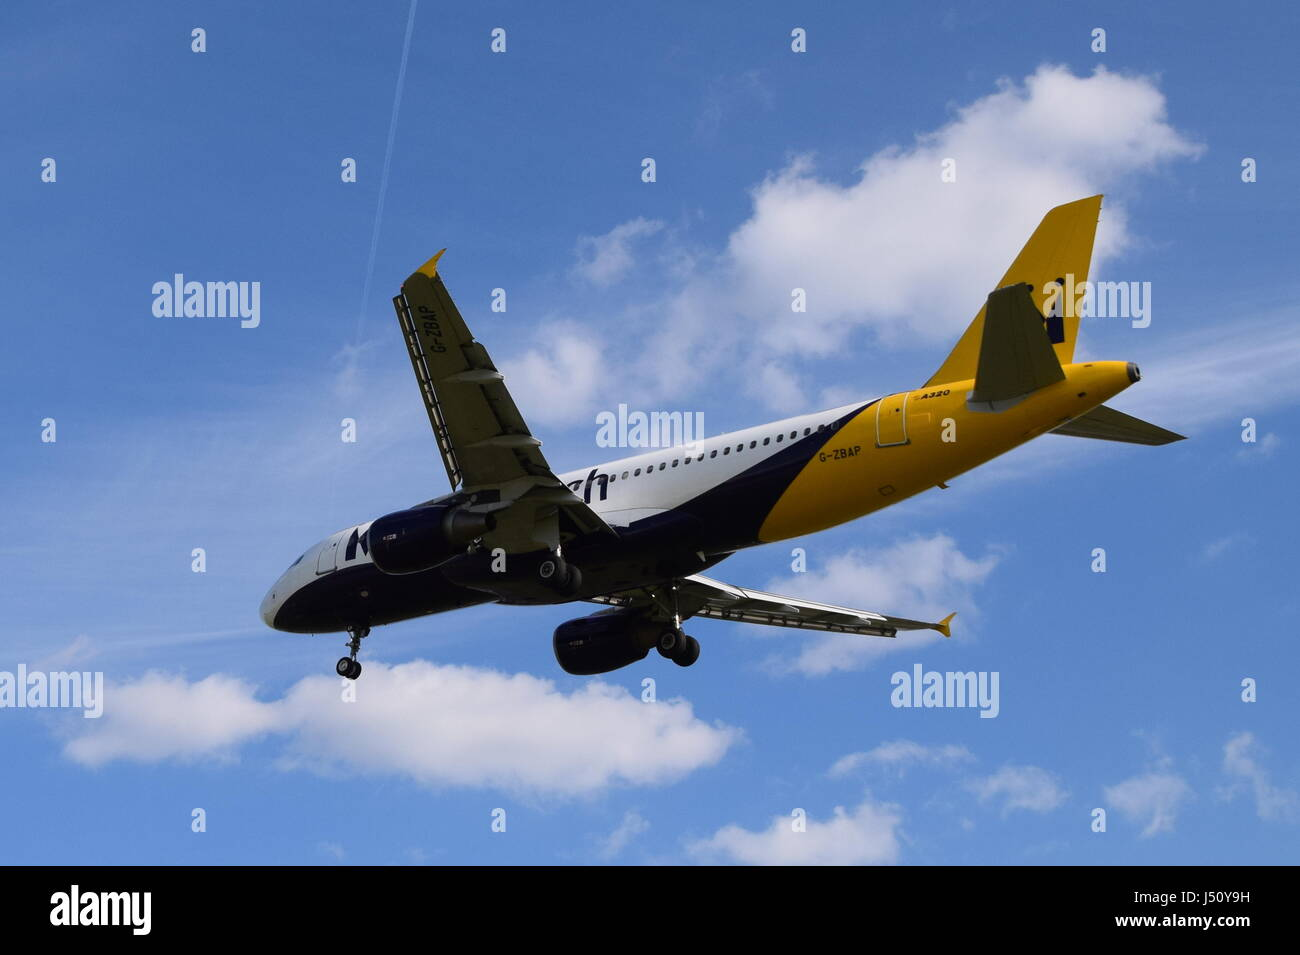 G-ZBAP Monarch Airlines Airbus A320-200 - cn 1605 on final approach to LGW London Gatwick airport - Stock Image